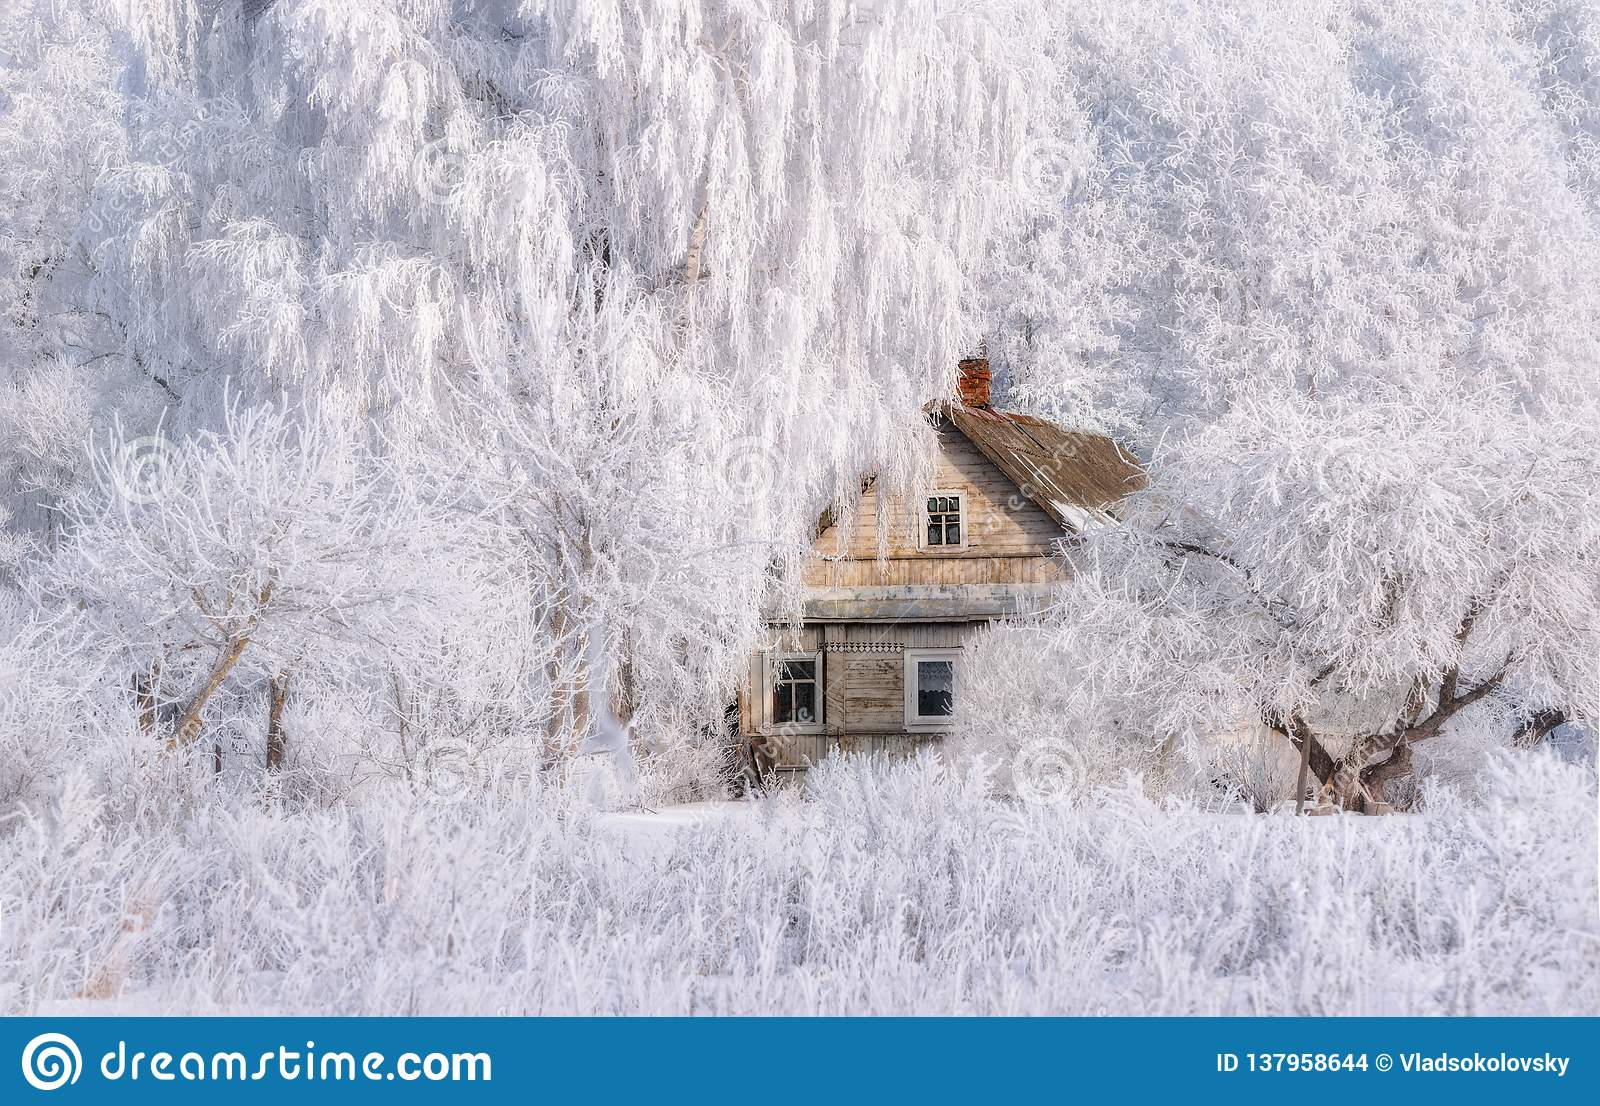 Retro Winter House.Christmas Landscape In Pink Tones With Old Fairy Tale House, Surrounded By Trees In Hoarfrost. Rural Landscape